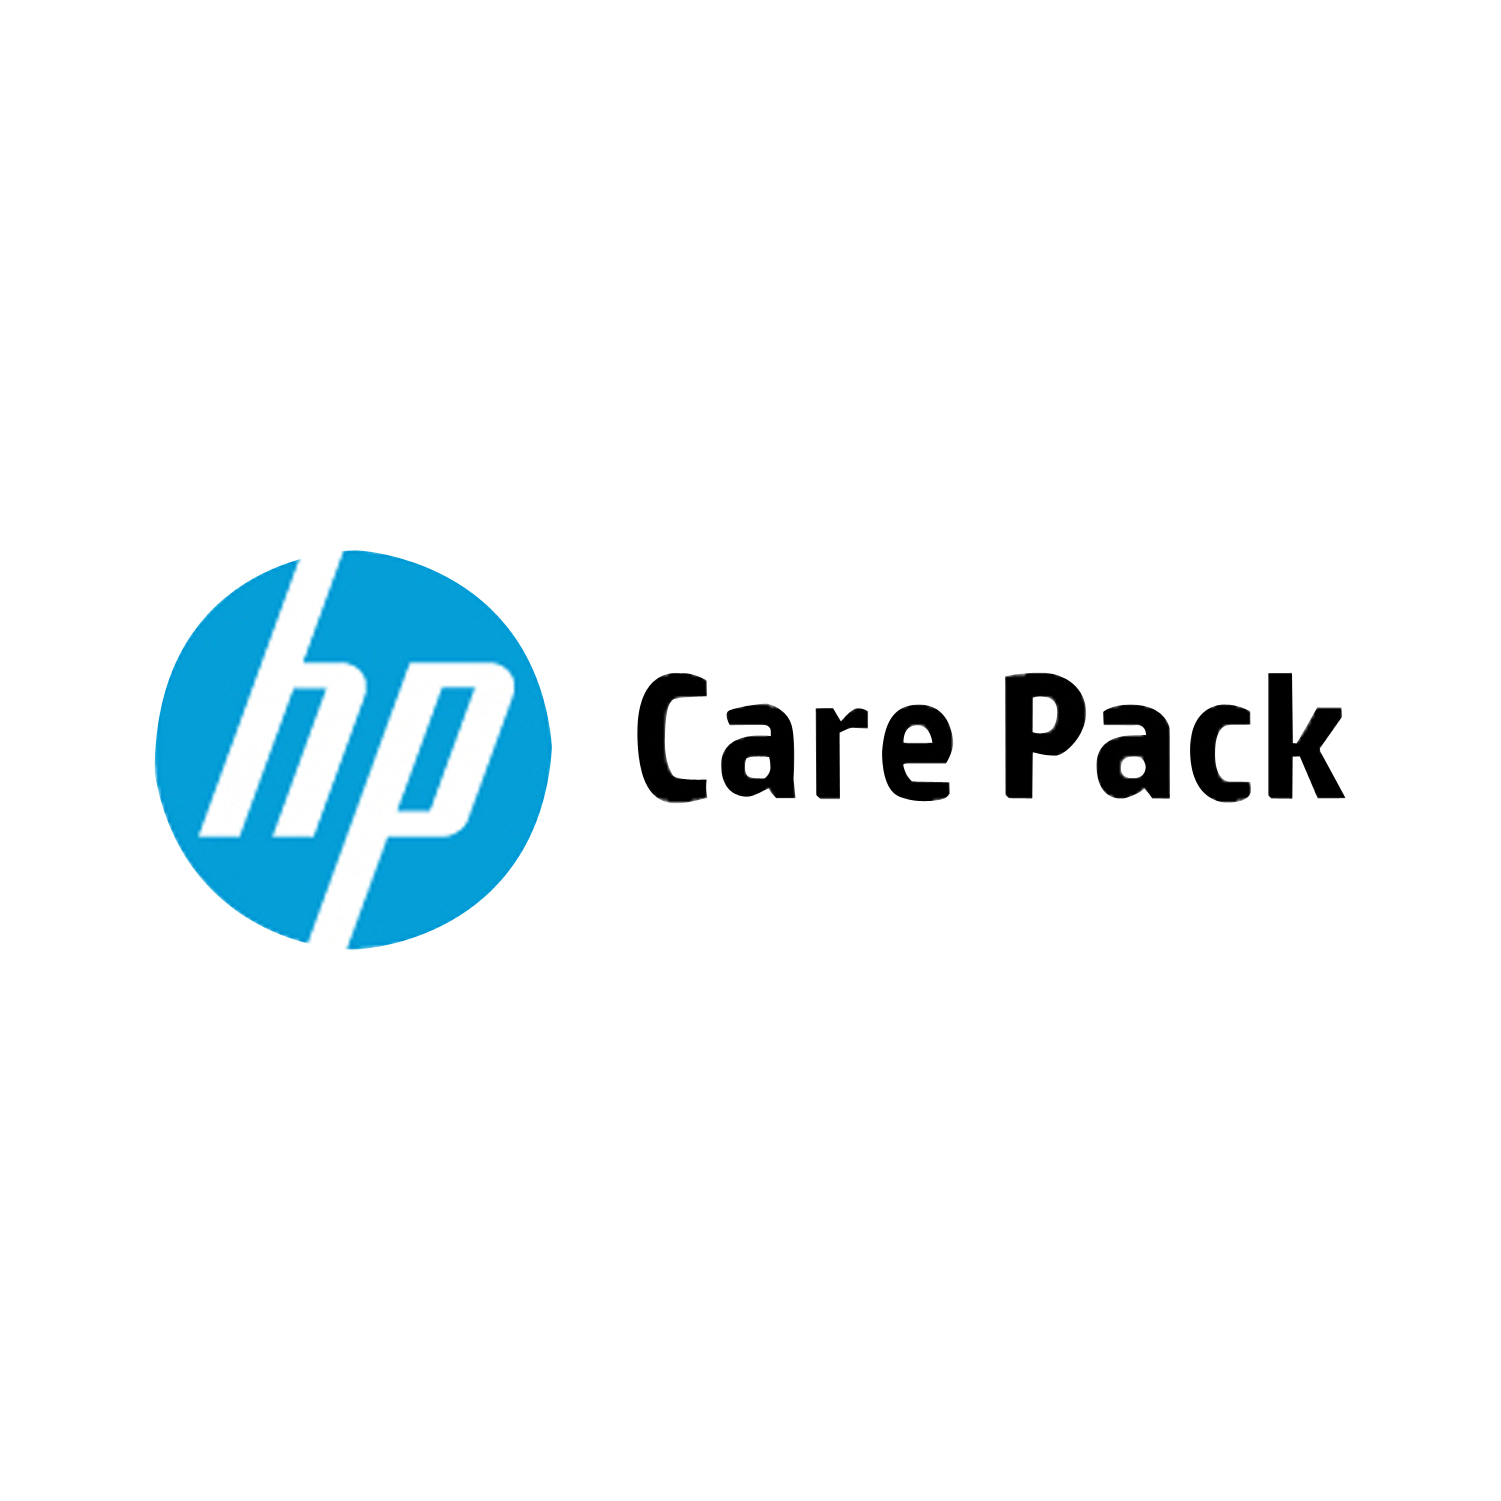 HP Carepack 3y NextBusDay Exchange TC Only SVC Thin Client T Series 3/0/0 Wty Excl Mon 3y Exchange SVC,HW Only, HP Ships  Replacement Next Bus Day,8am-5pm,Std Bus  Days Excl HP Hol.HP Pre-pay - C2000